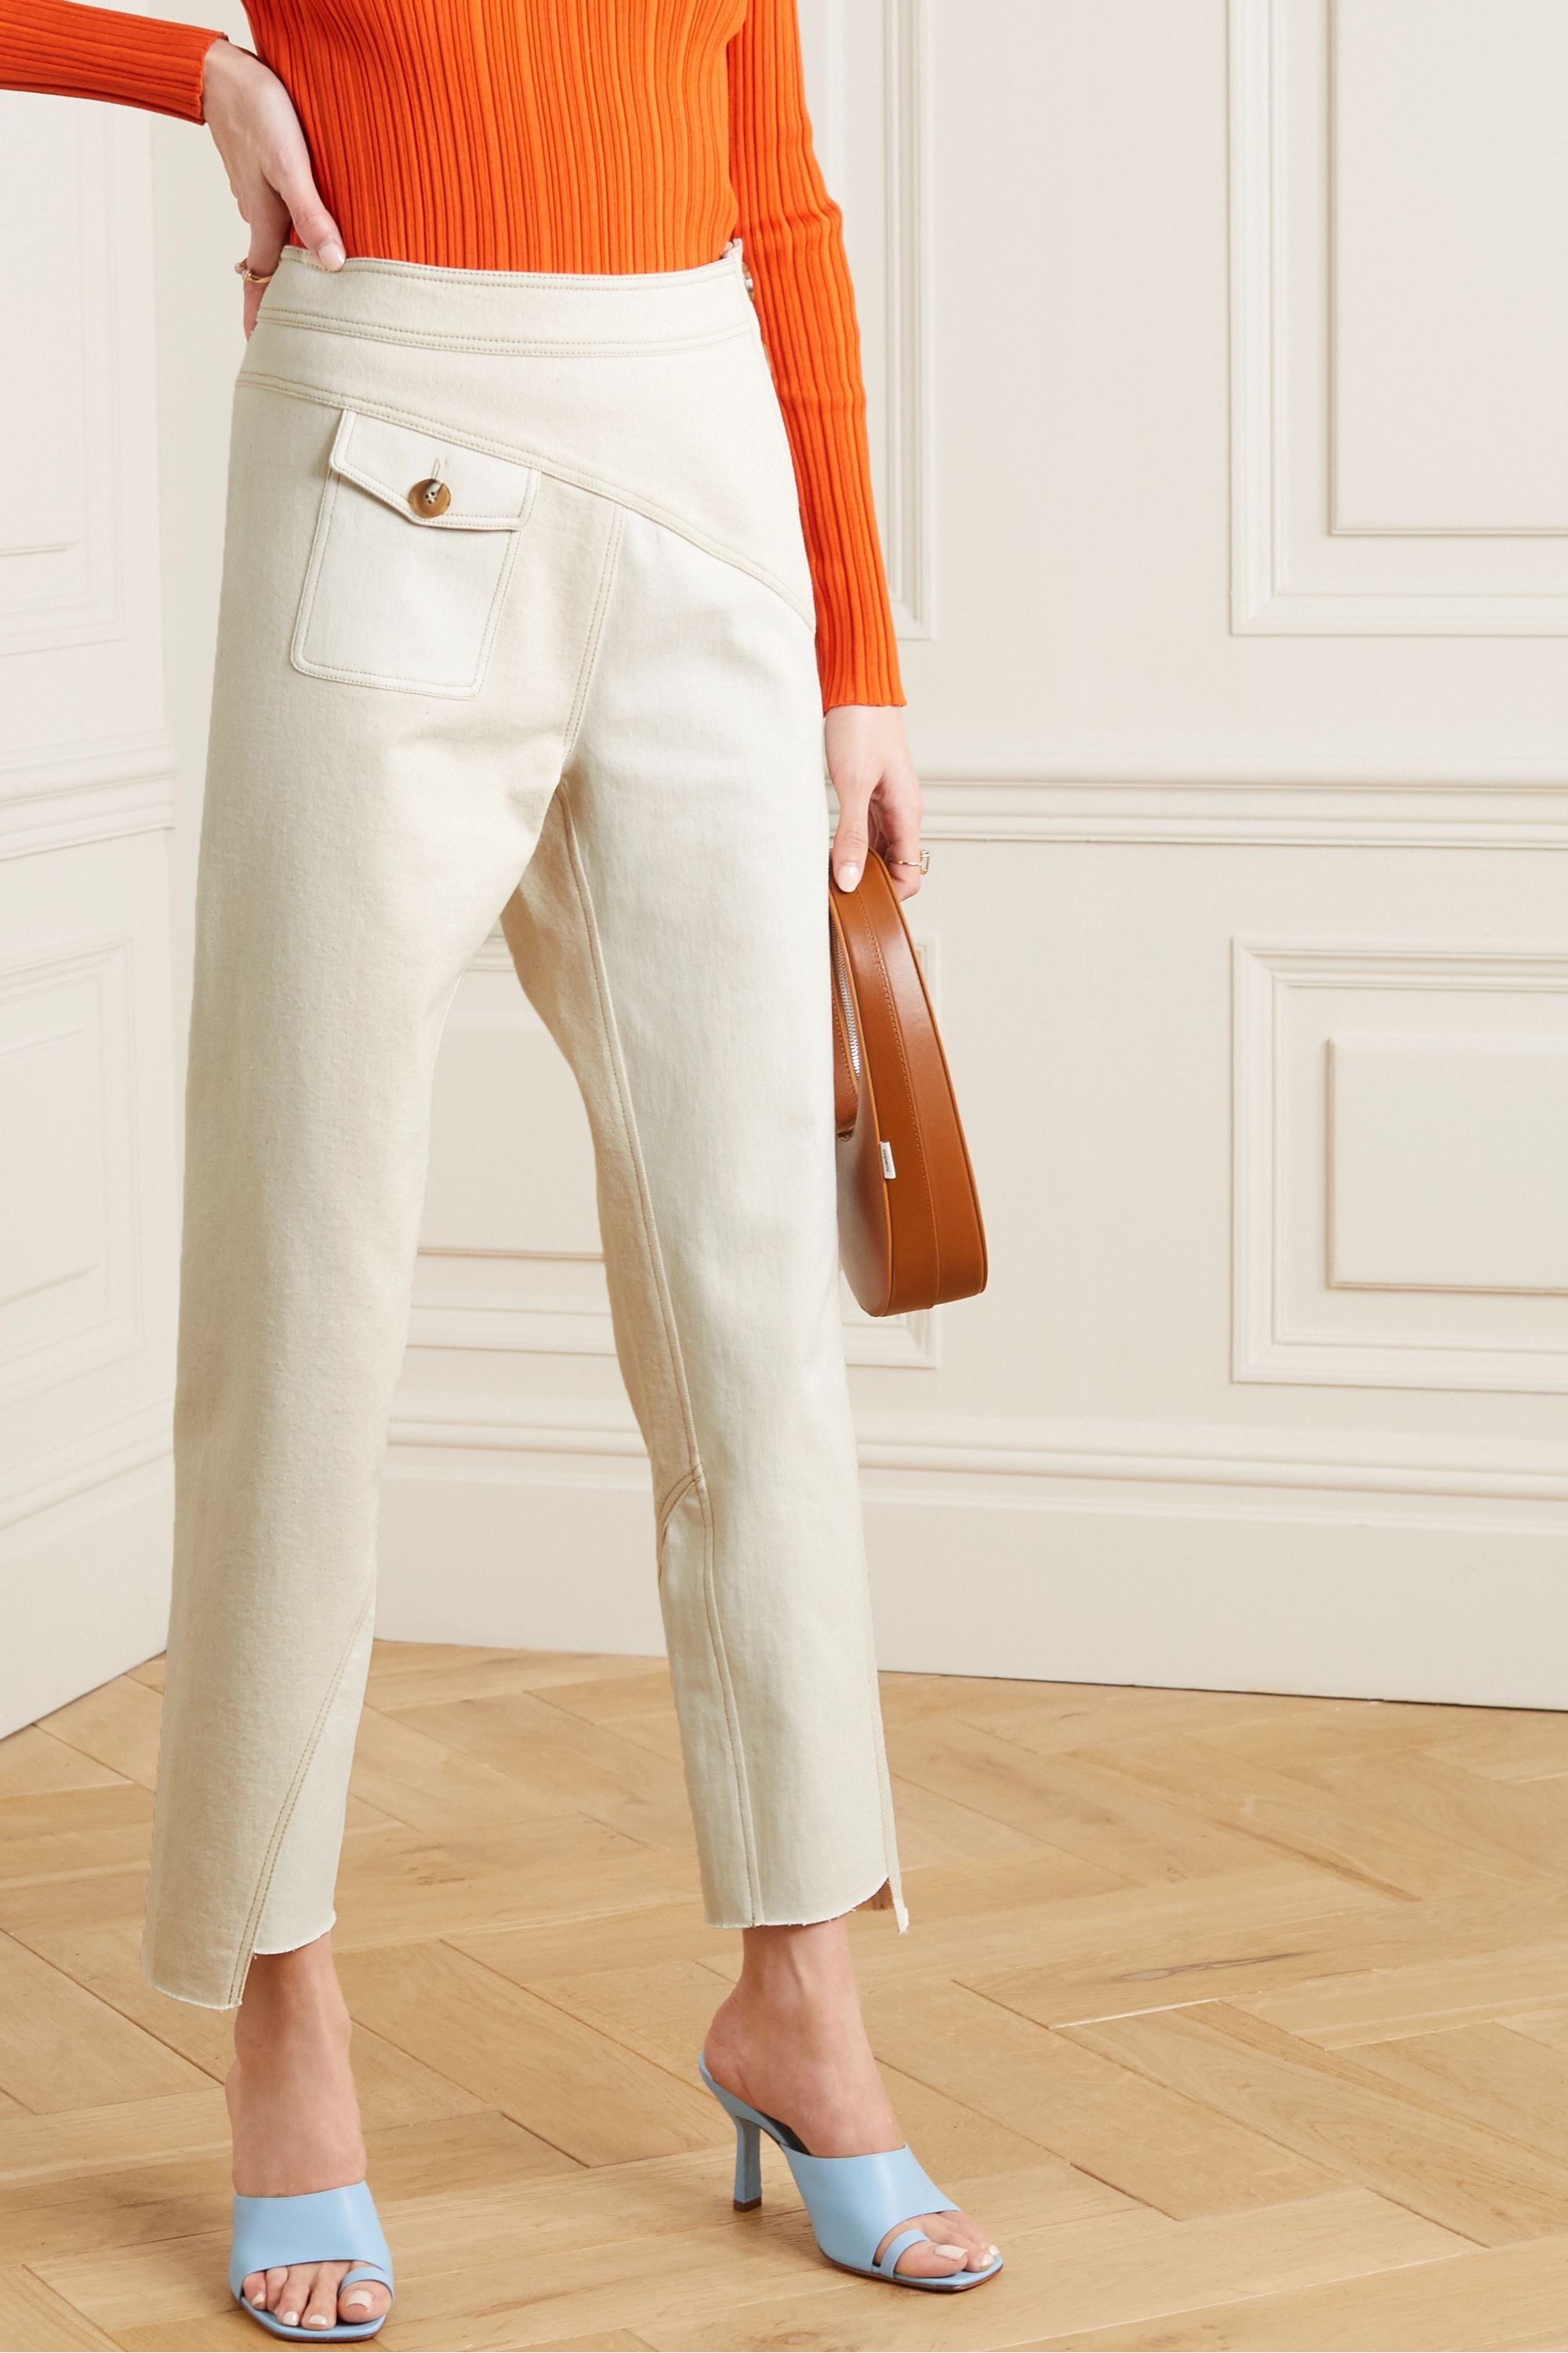 REJINA PYO Lucie two-tone paneled denim tapered pants